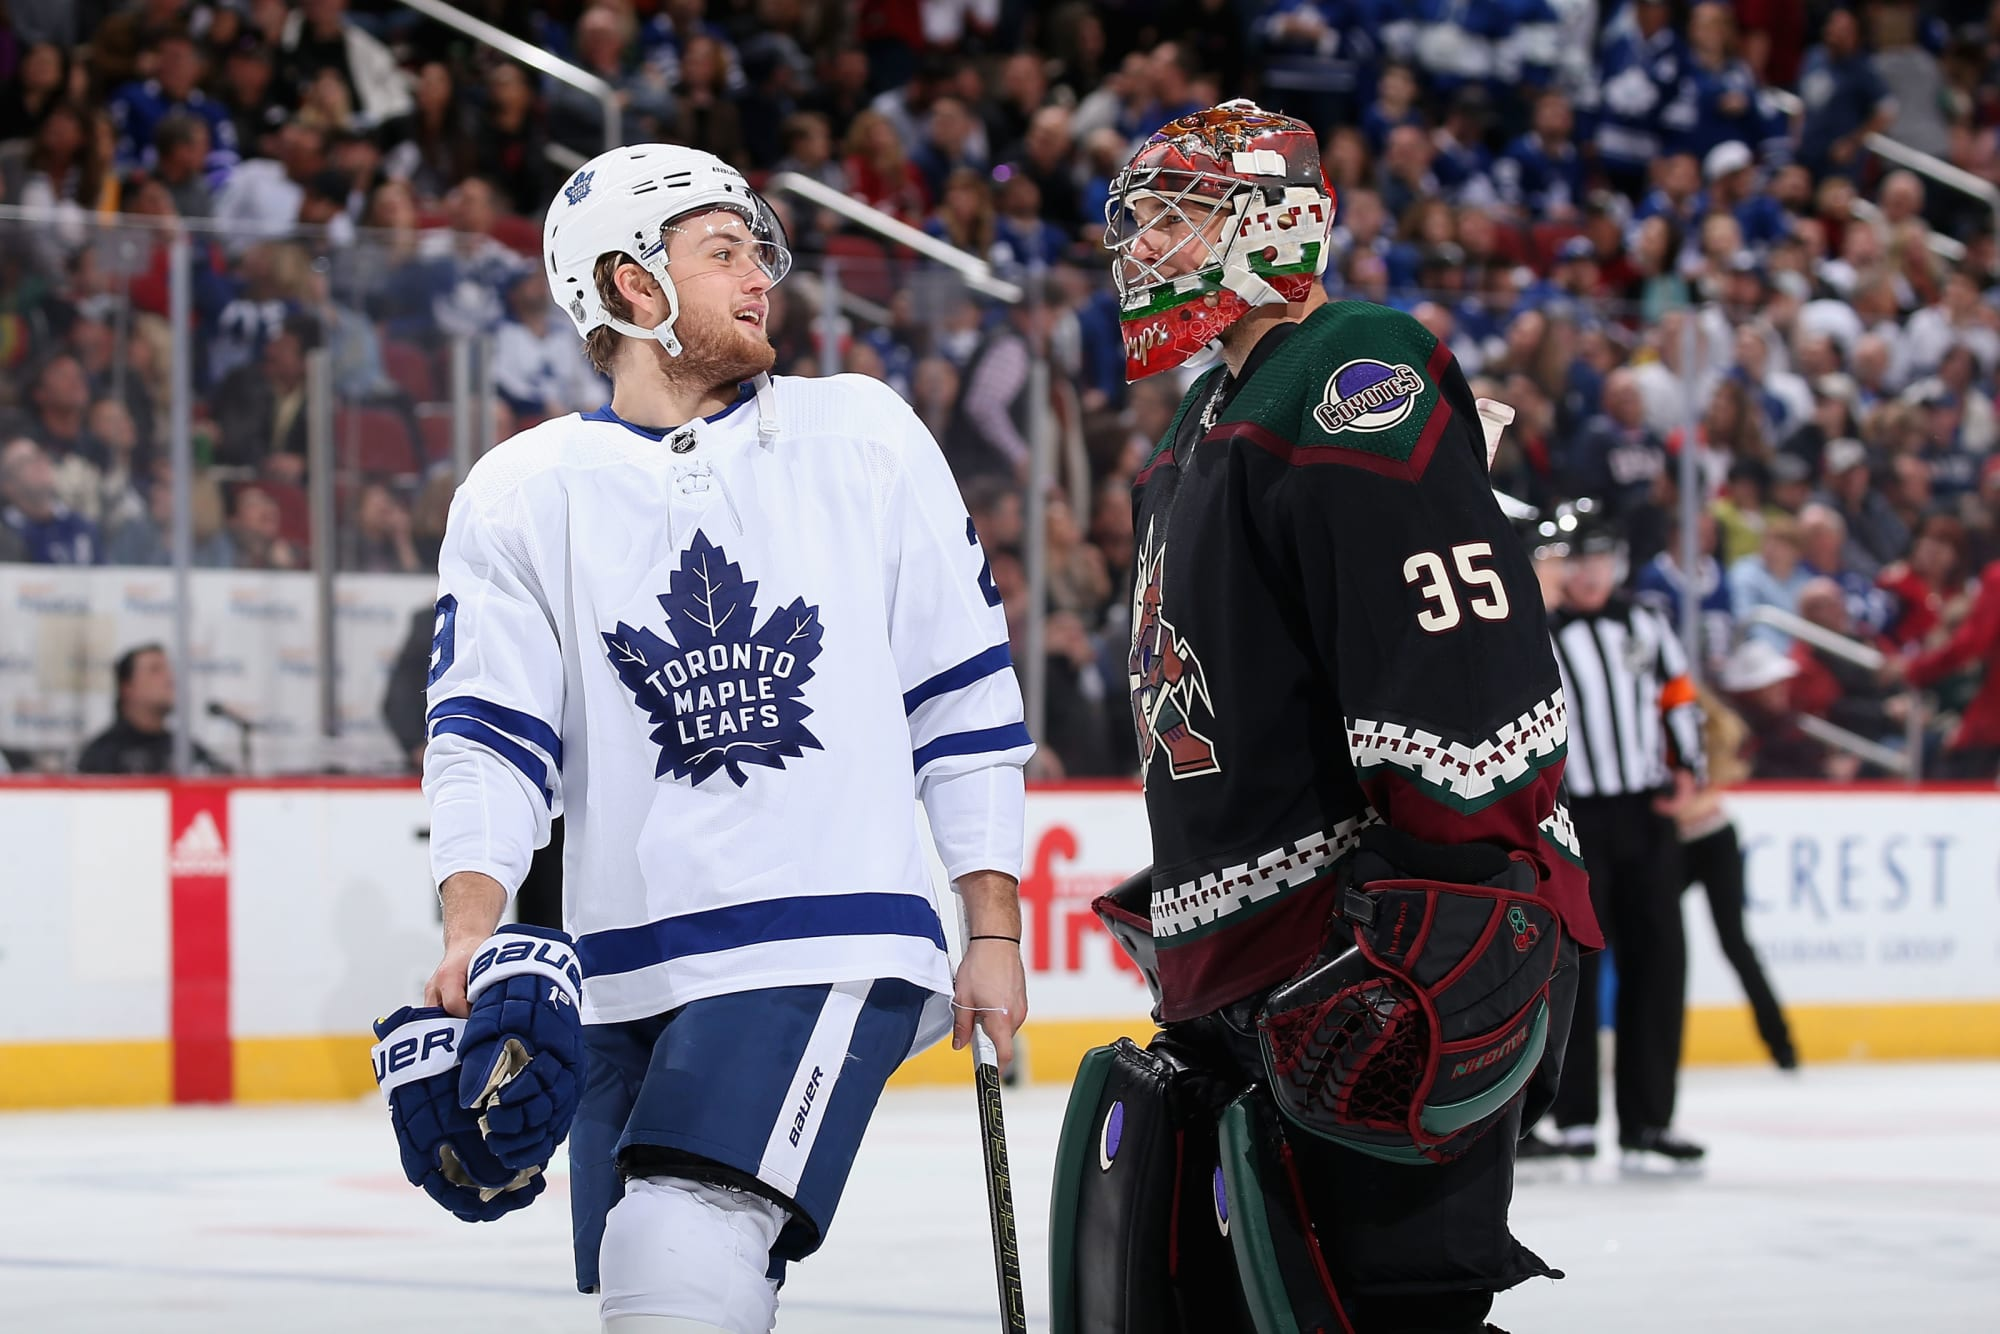 Toronto Maple Leafs Rumour: Darcy Kuemper on the Move?